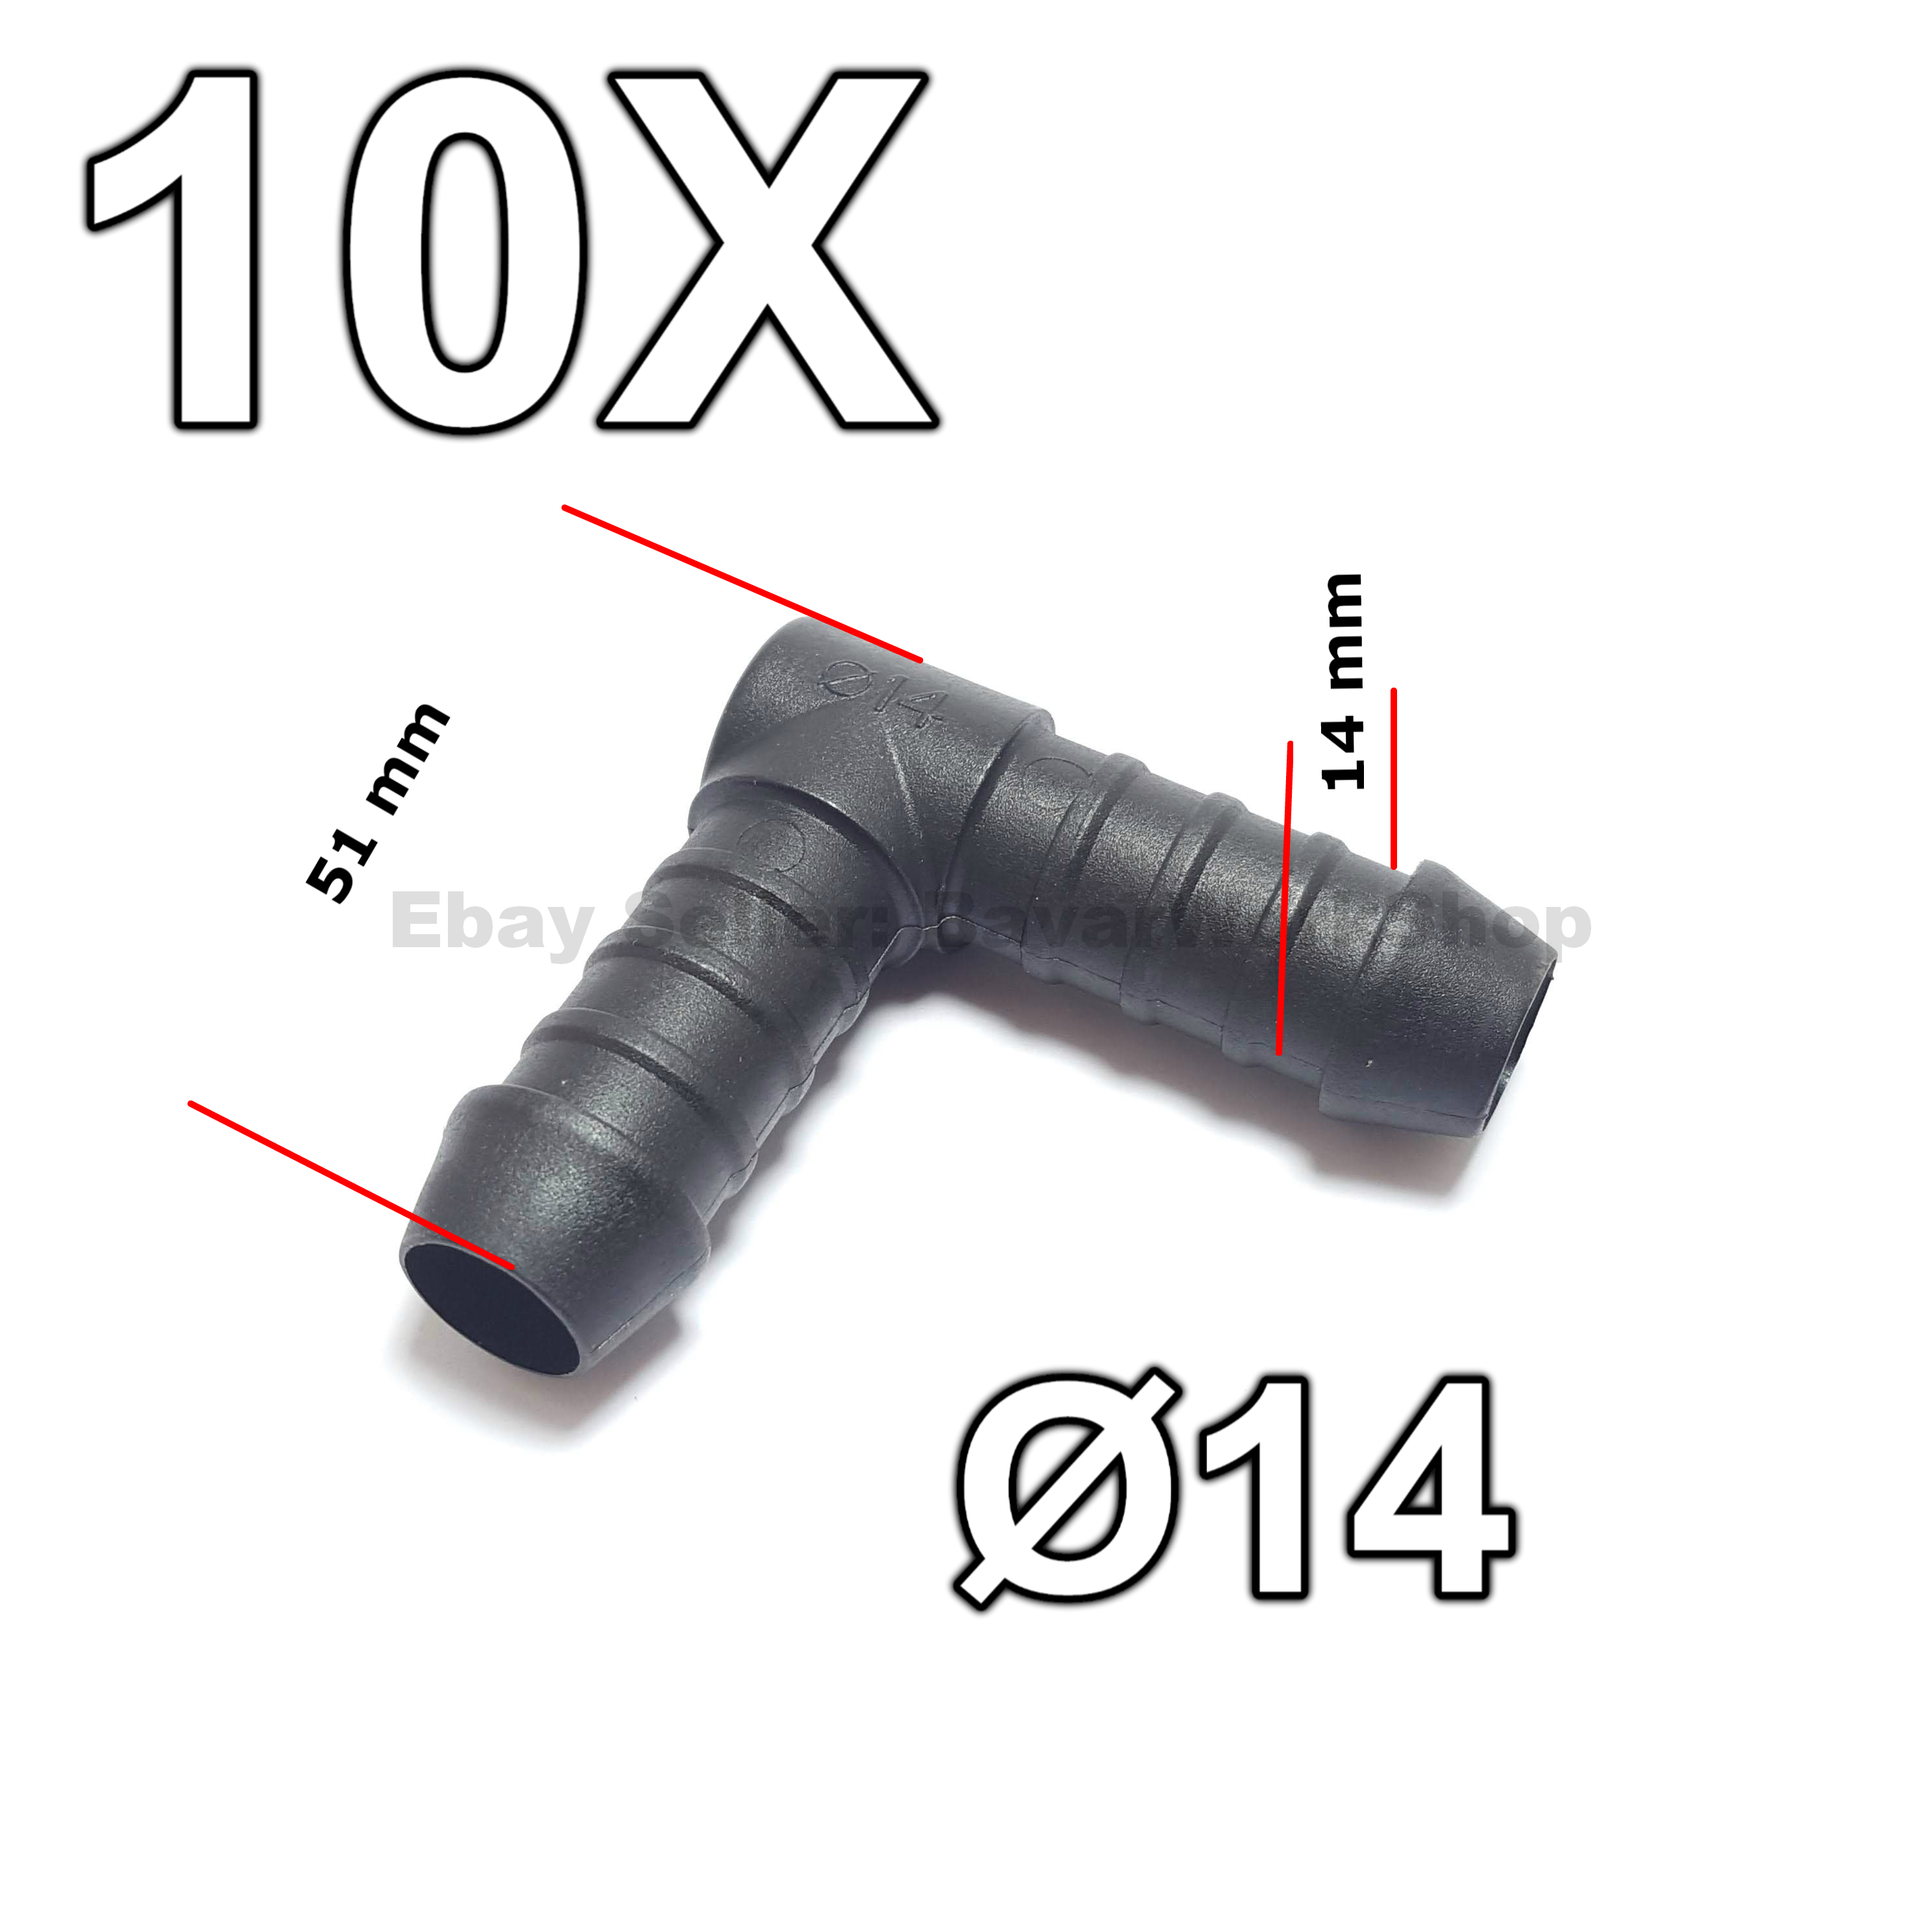 2X 4mm to 8mm L-Type 90 Degree Reducing Hose Tube Connector for Air Fuel Water